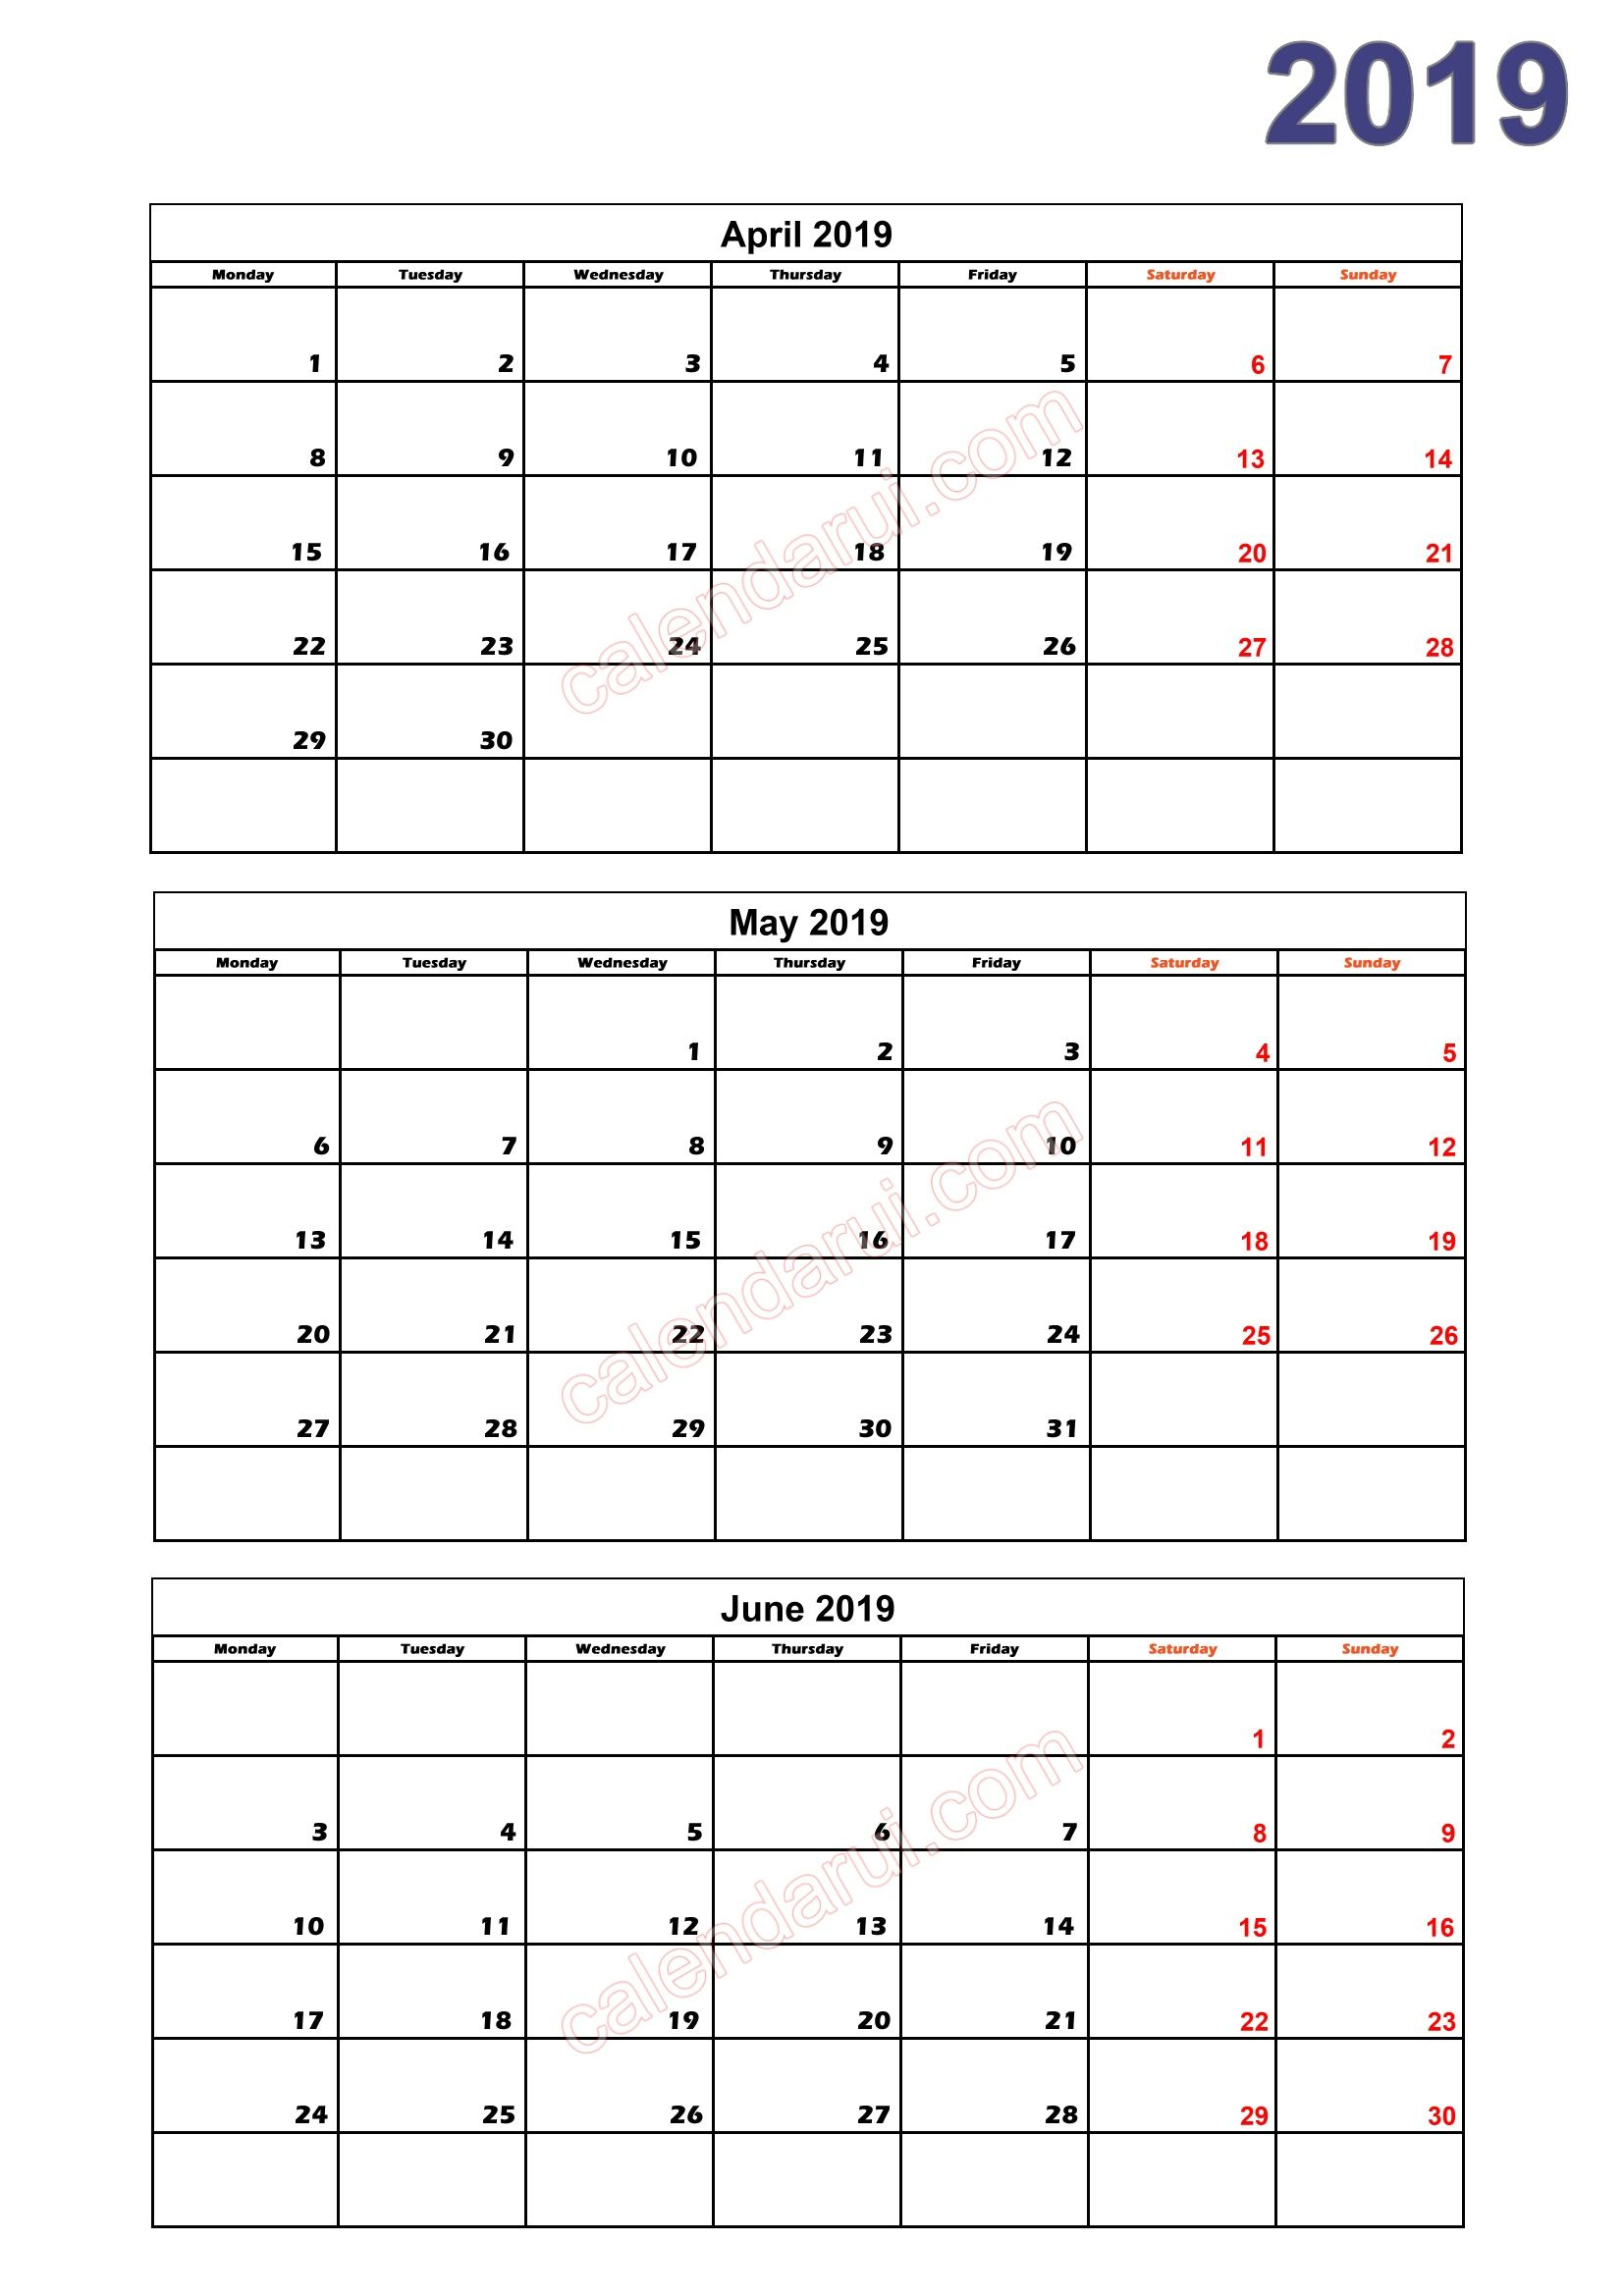 Quarterly Calendar Template 2020 - Wpa.wpart.co